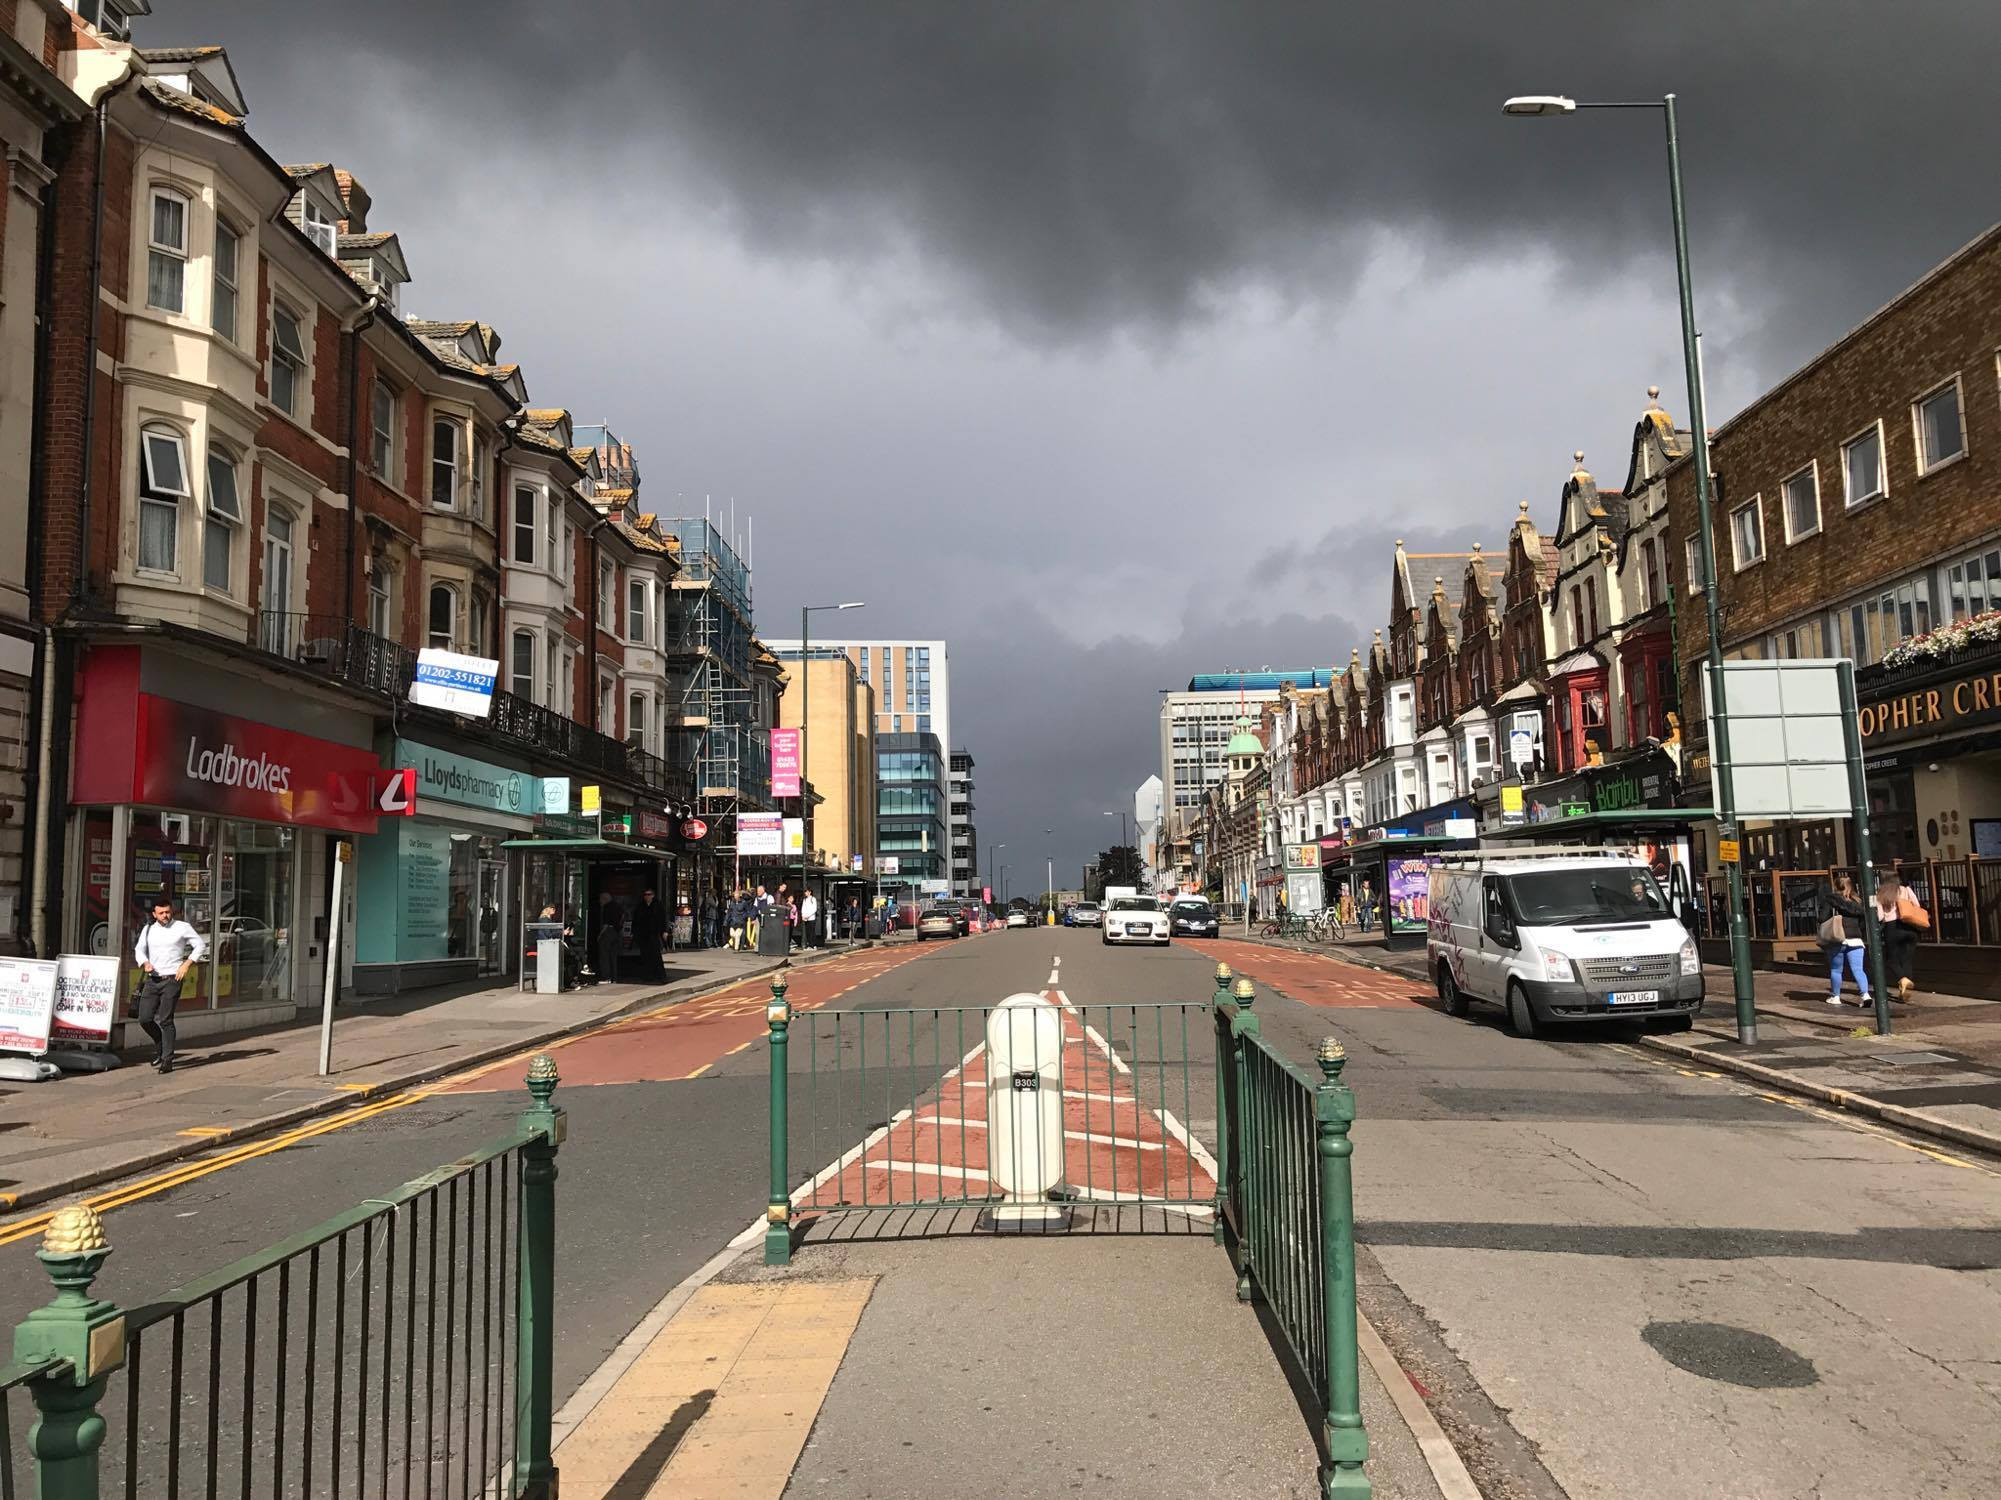 Holdenhurst Road in Bournemouth. Image by Aakash Bhatia